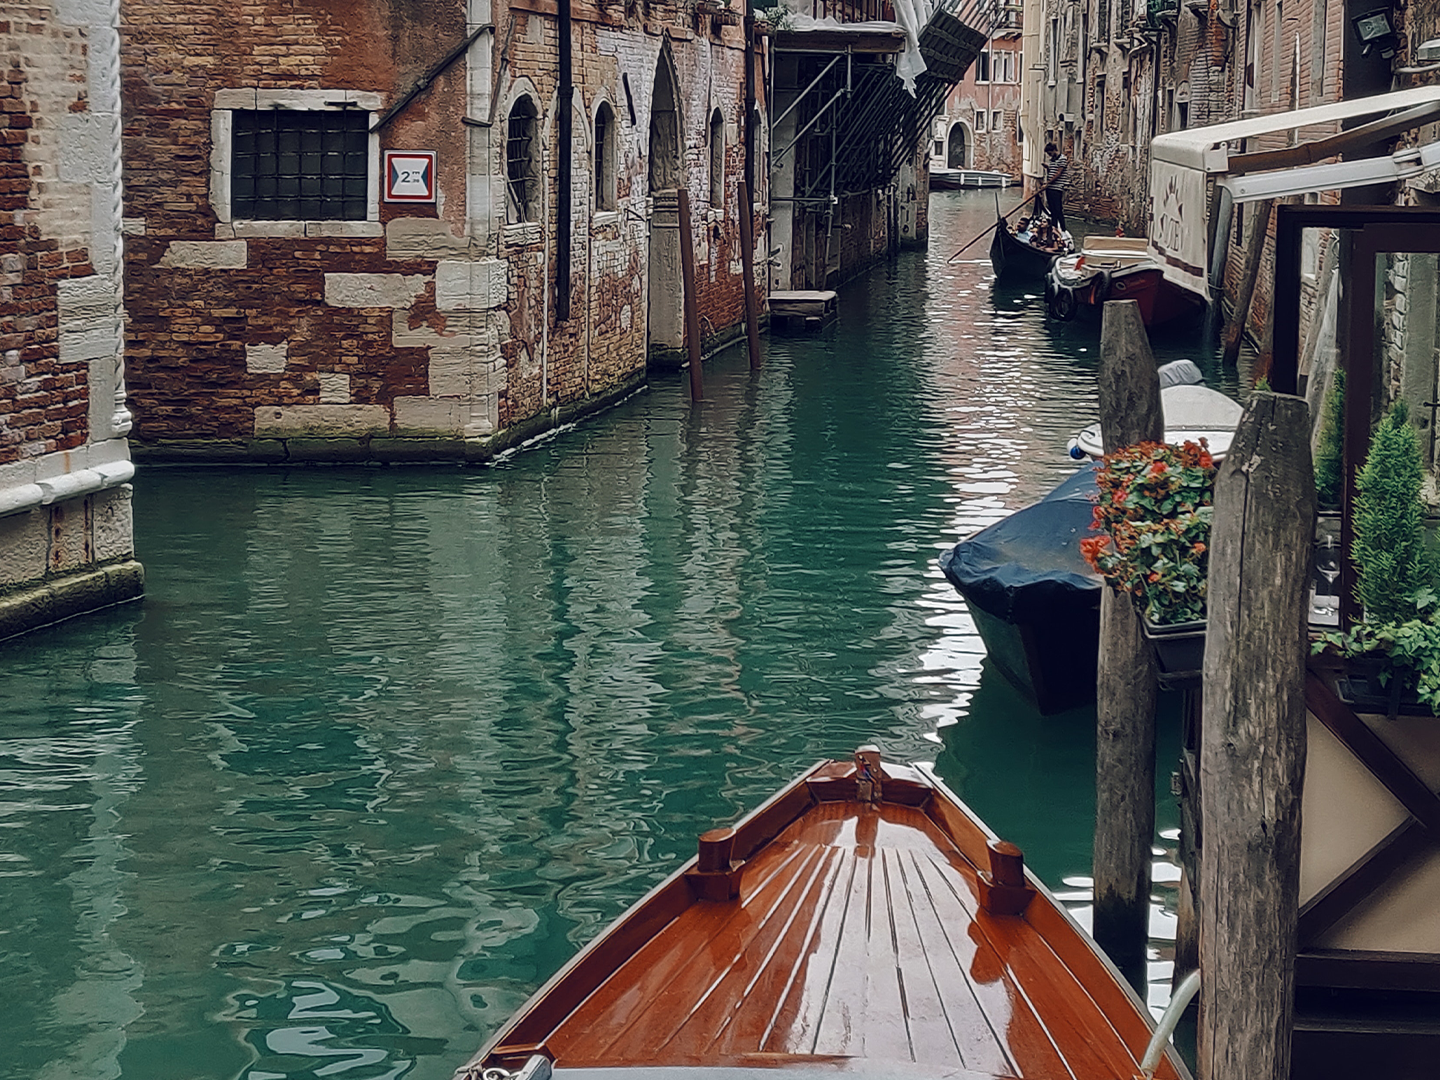 Gondola in Venice canal